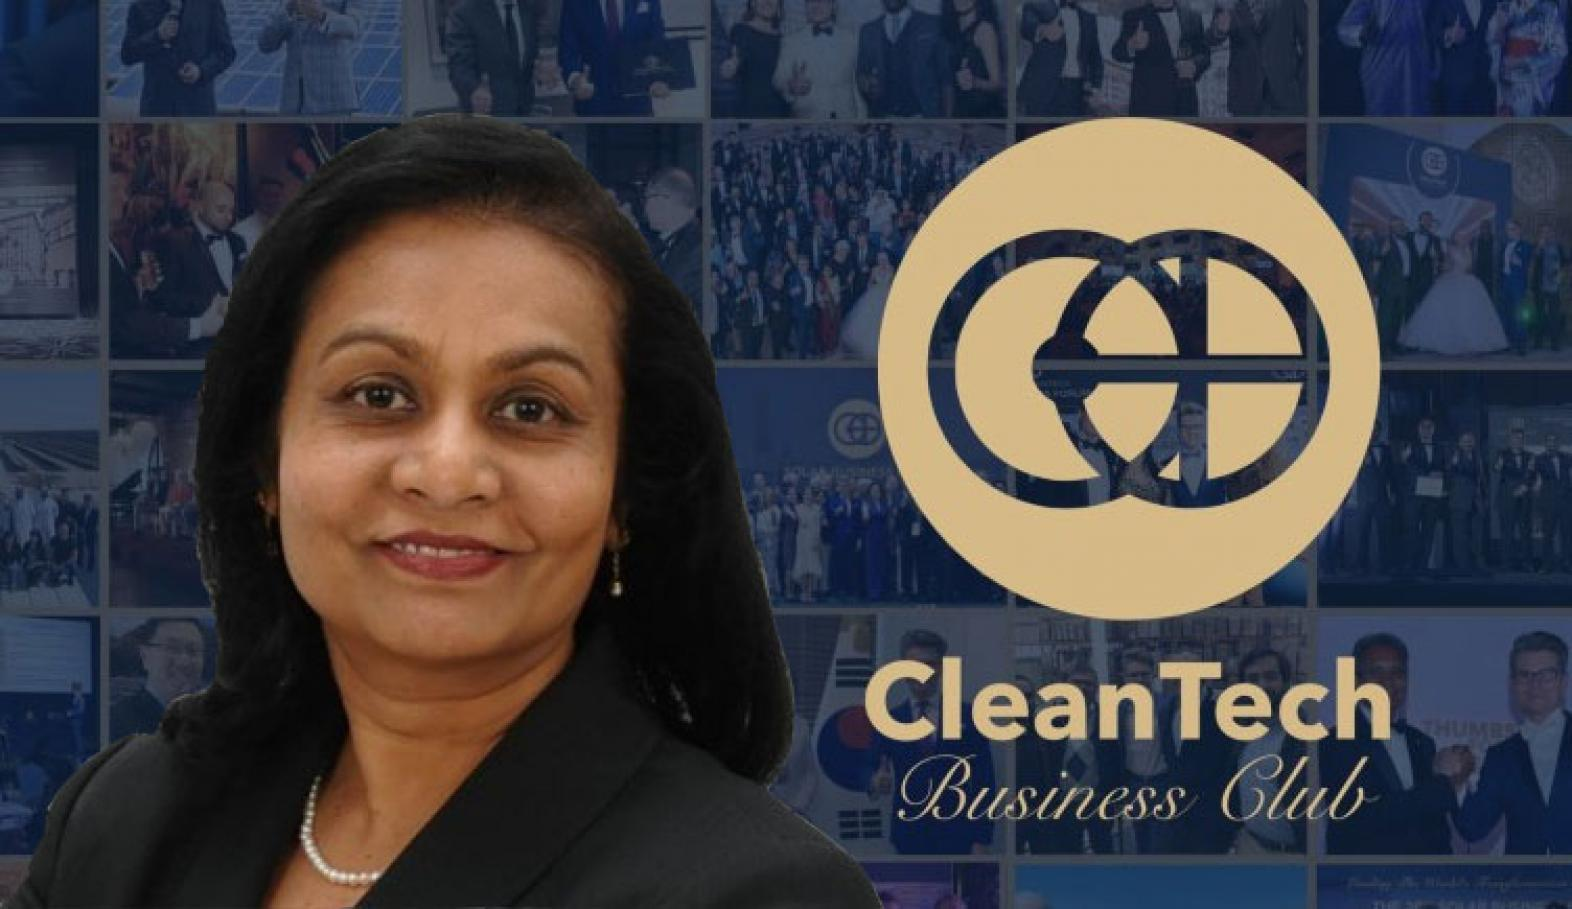 Underwriters Laboratories Research Director Dr. Judy Jeevarajan spoke as a panelist on the topic of Energy Storage at the first World CleanTech Week e-Convention